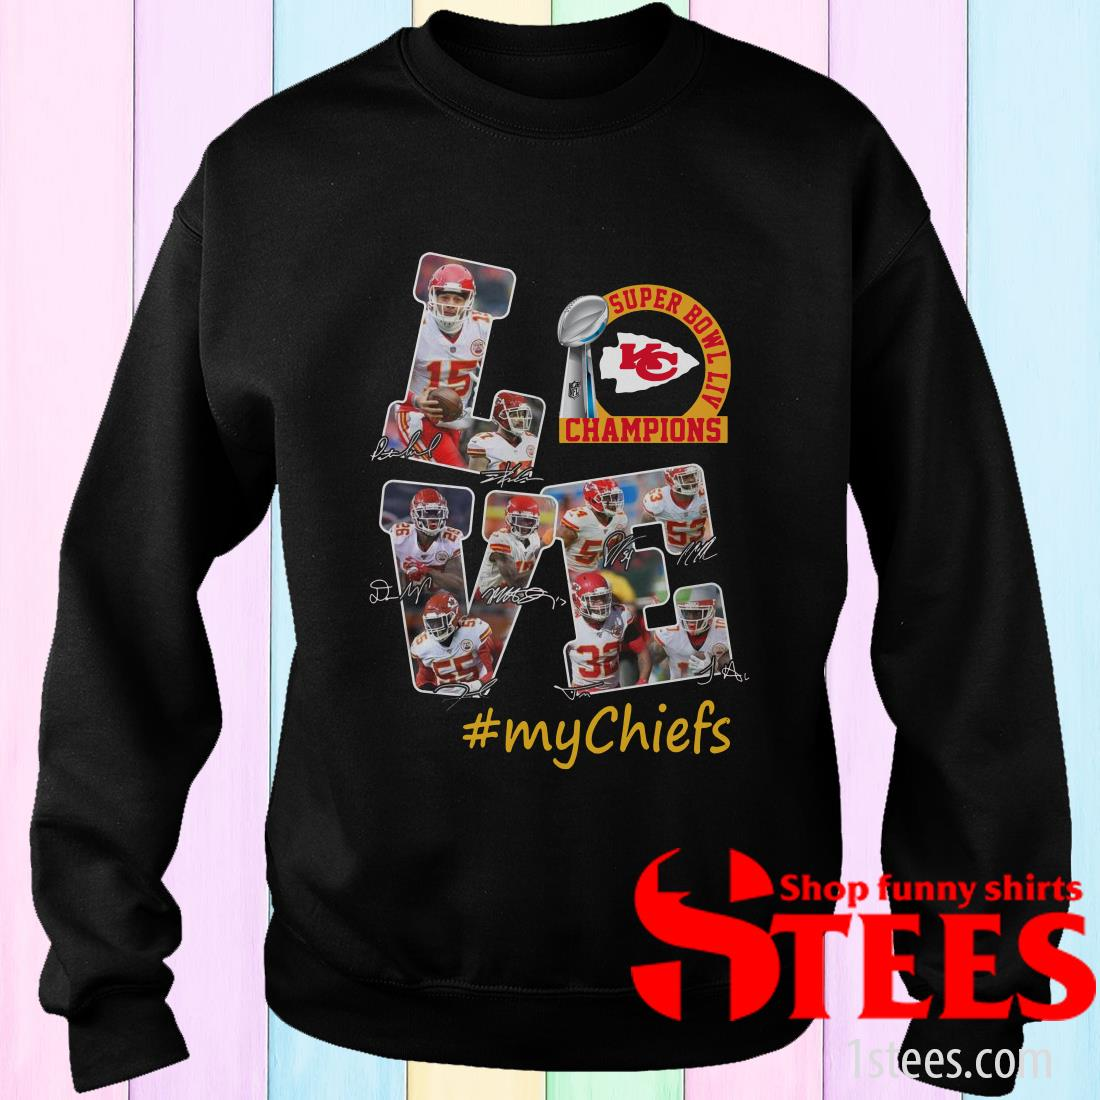 Super Bowl LIV Champions Love #My Chiefs Signature Sweatshirt